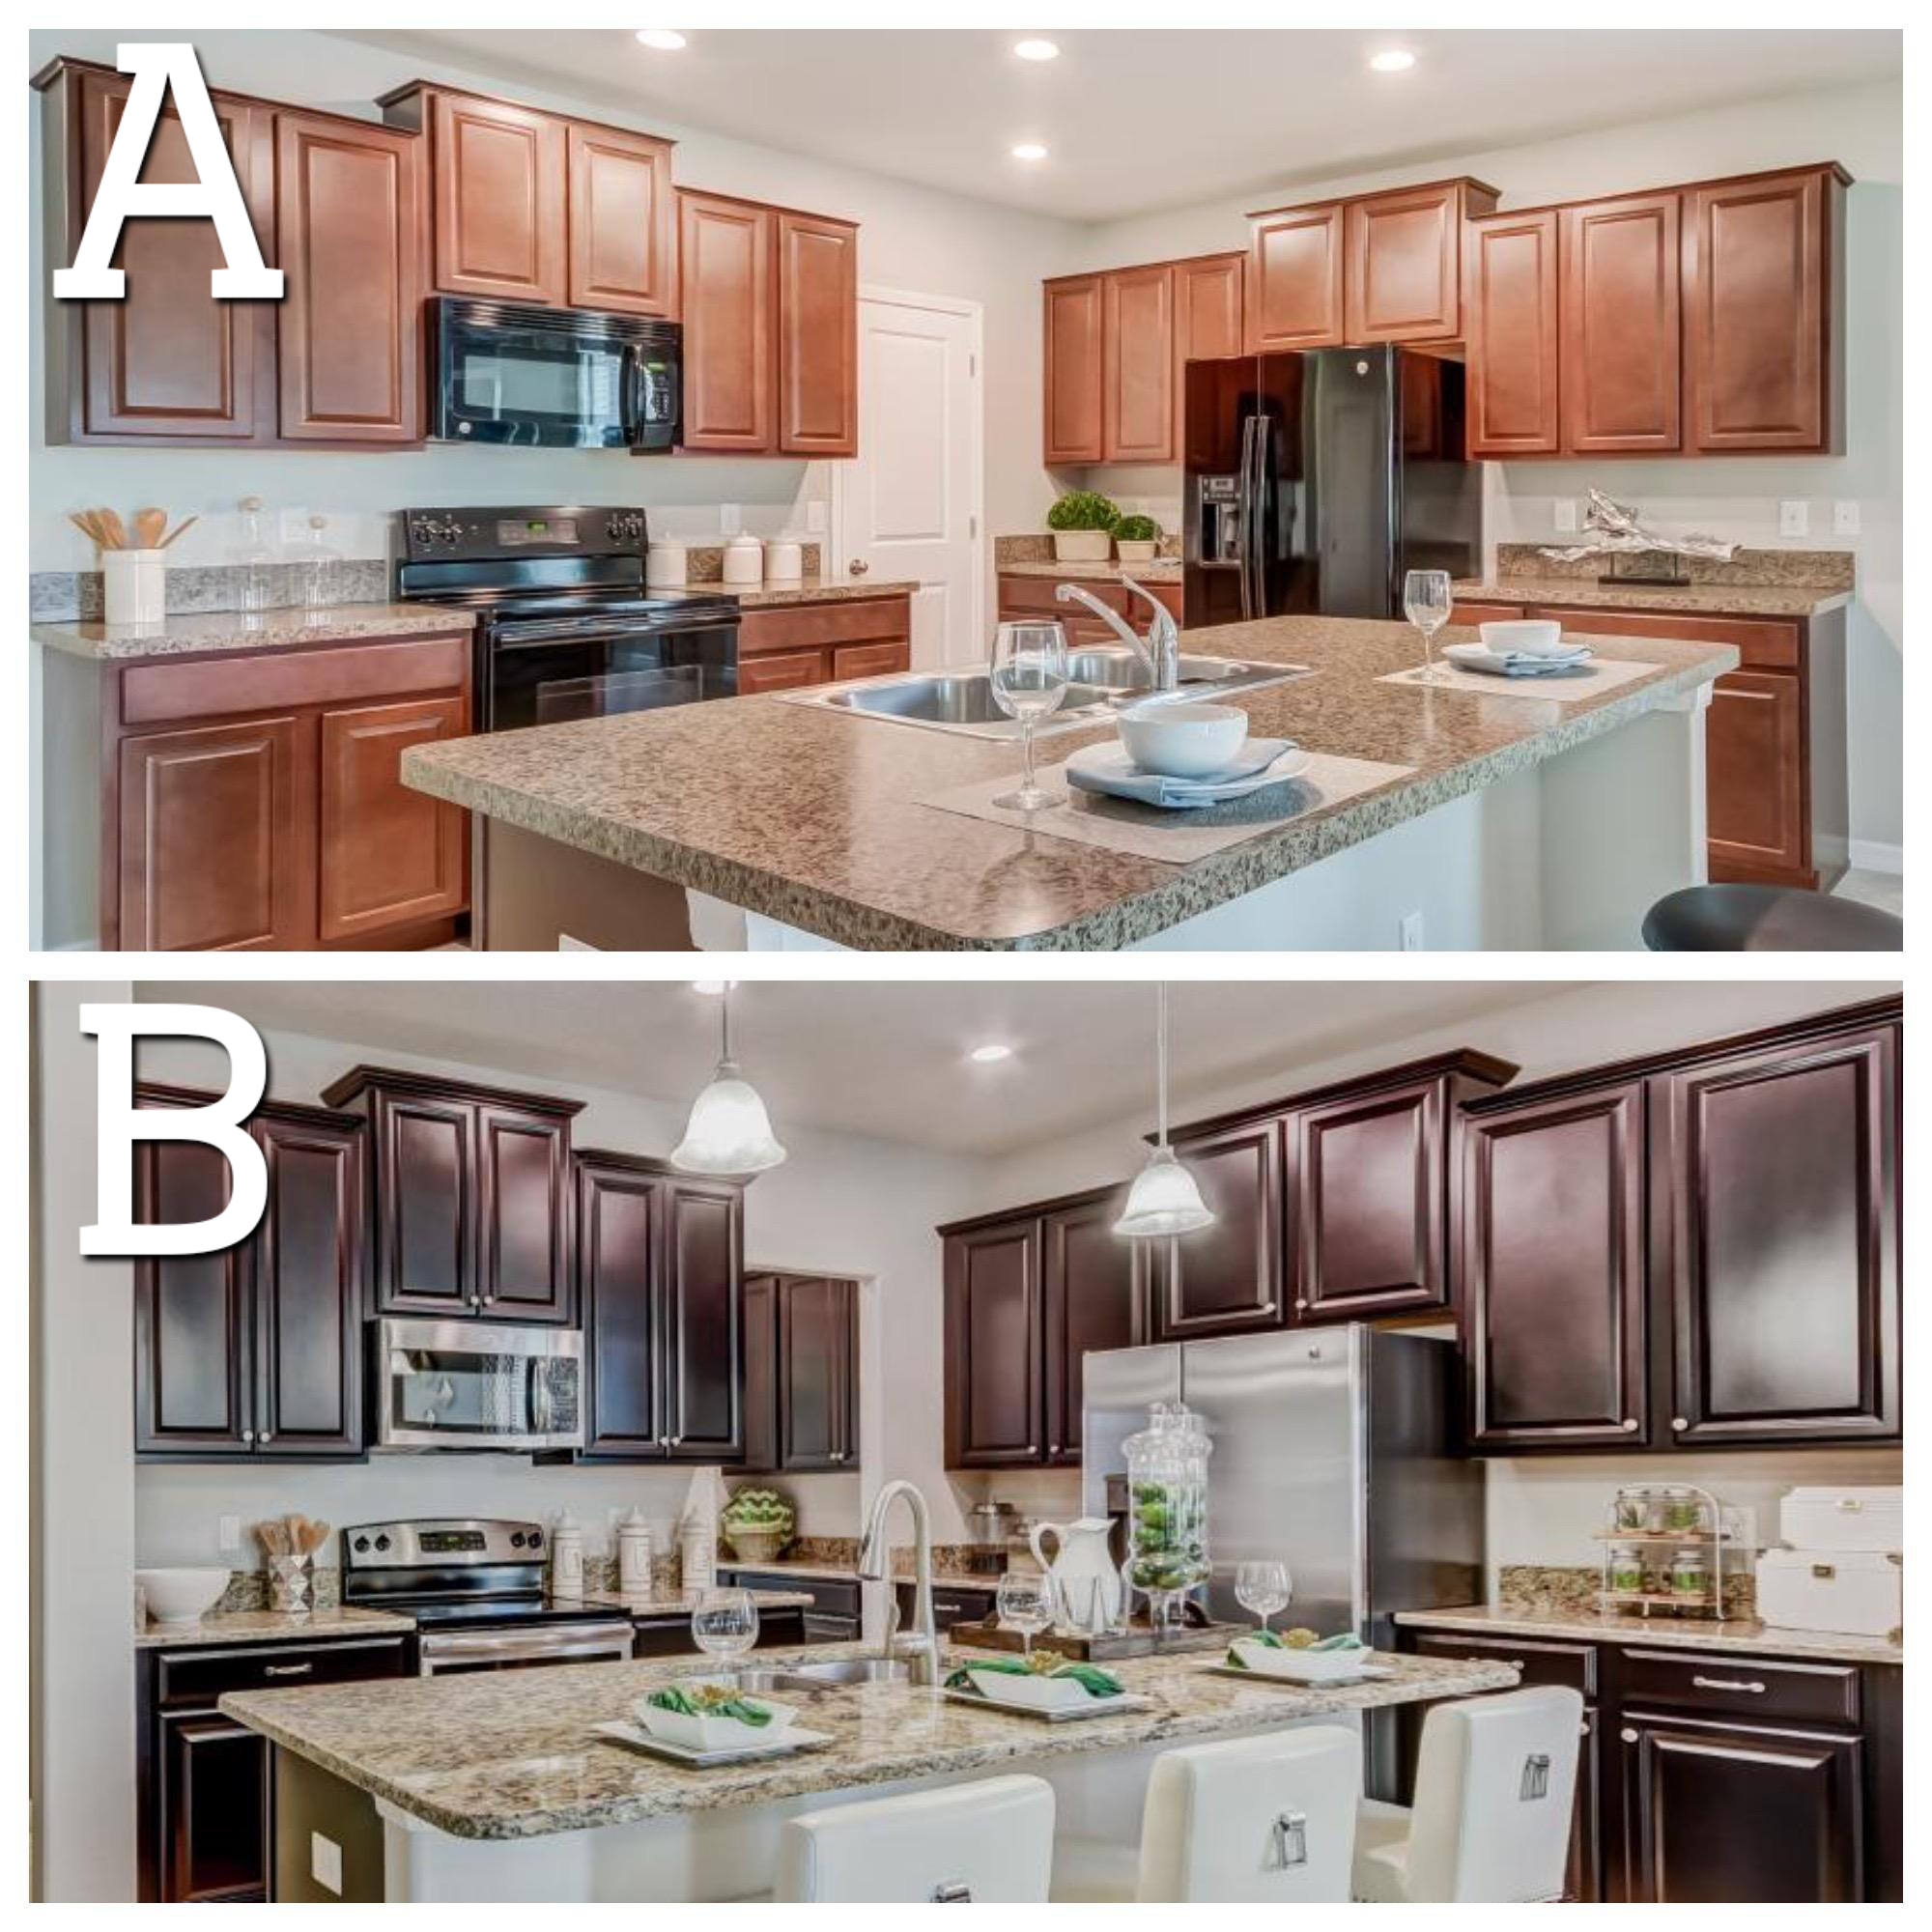 Appliances Raleigh If You Could Choose Which Kitchen Would You Rather Use A The